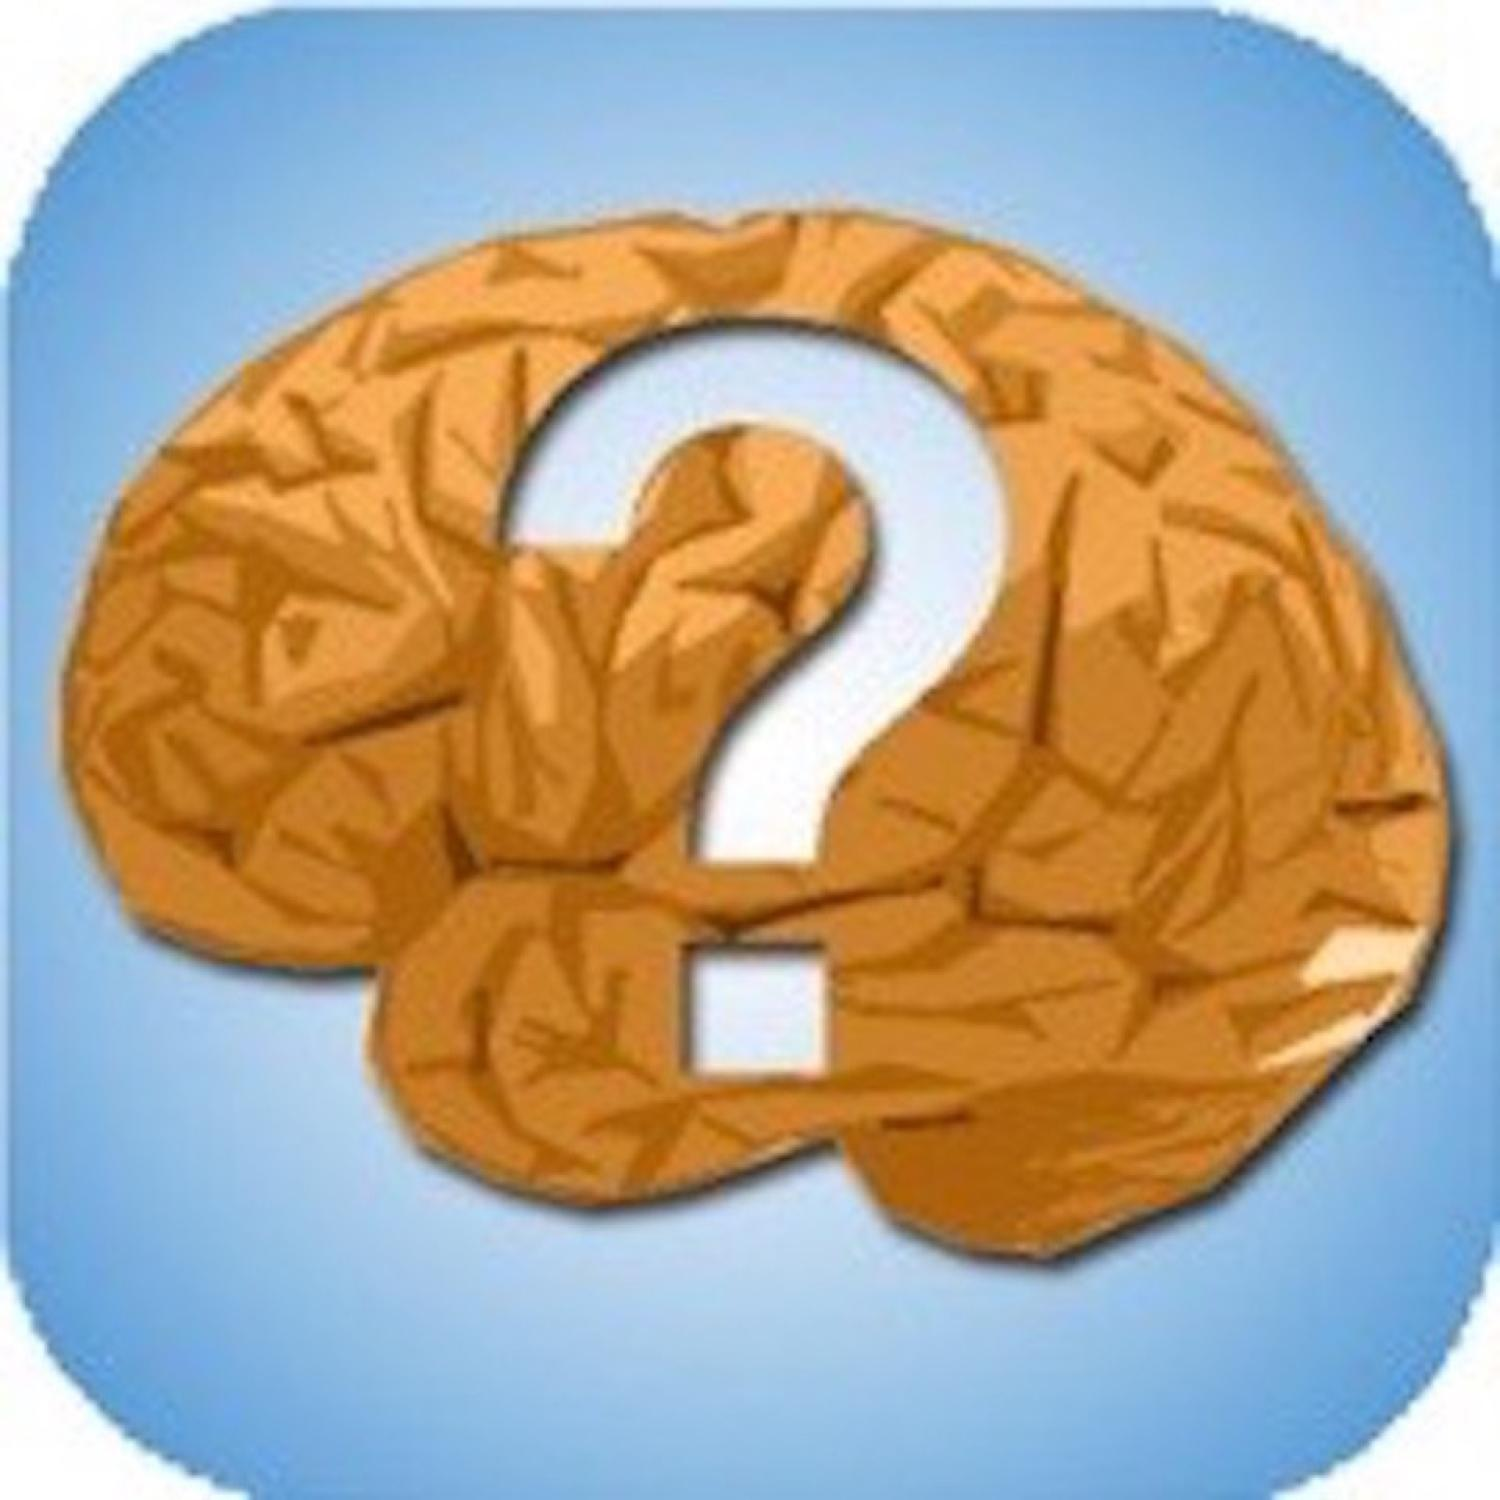 Brain with a question mark